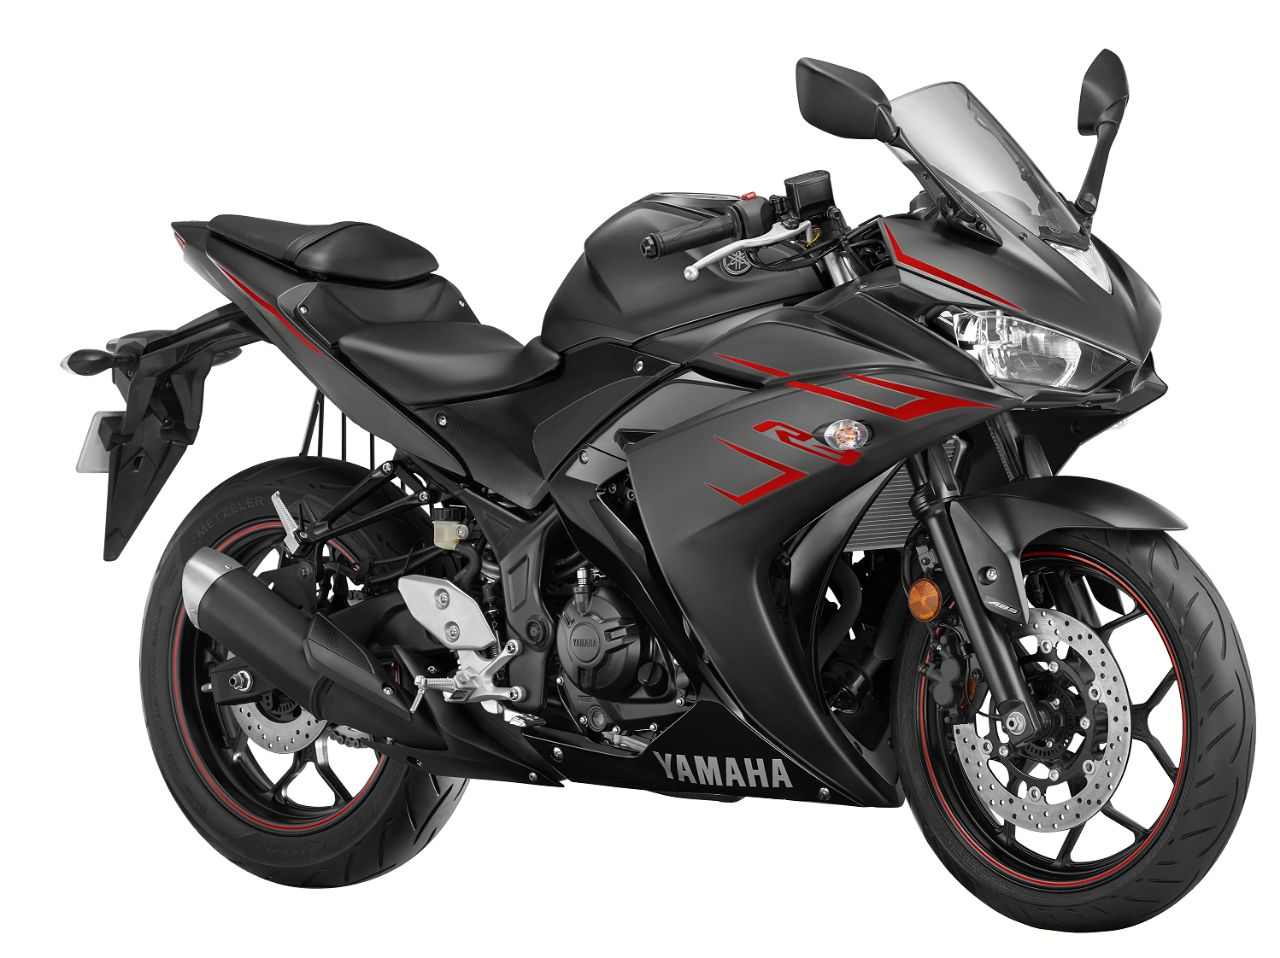 official release yamaha r3 abs launched at lakh ex